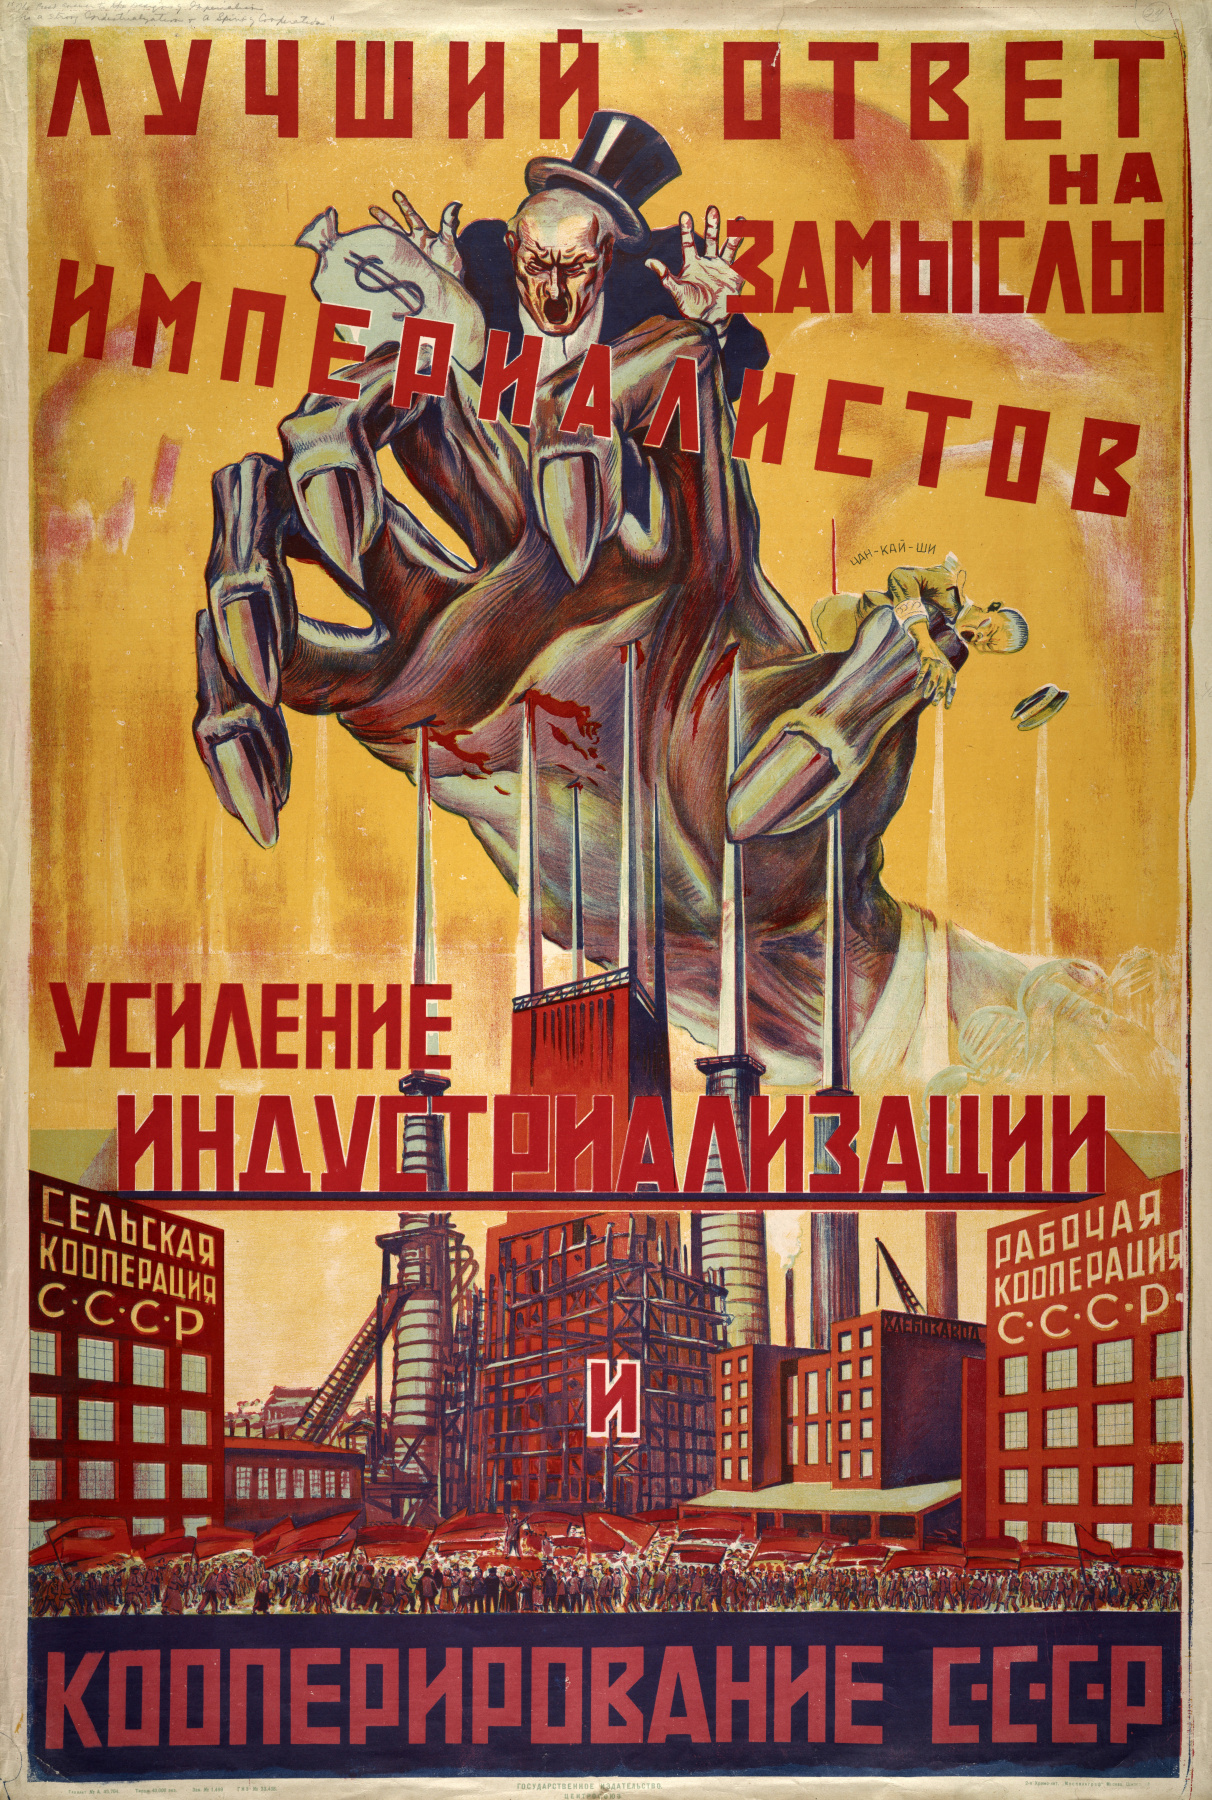 Unknown artist. Kooperativnye of the USSR. The best response to the plans of the imperialists — strengthening cooperation